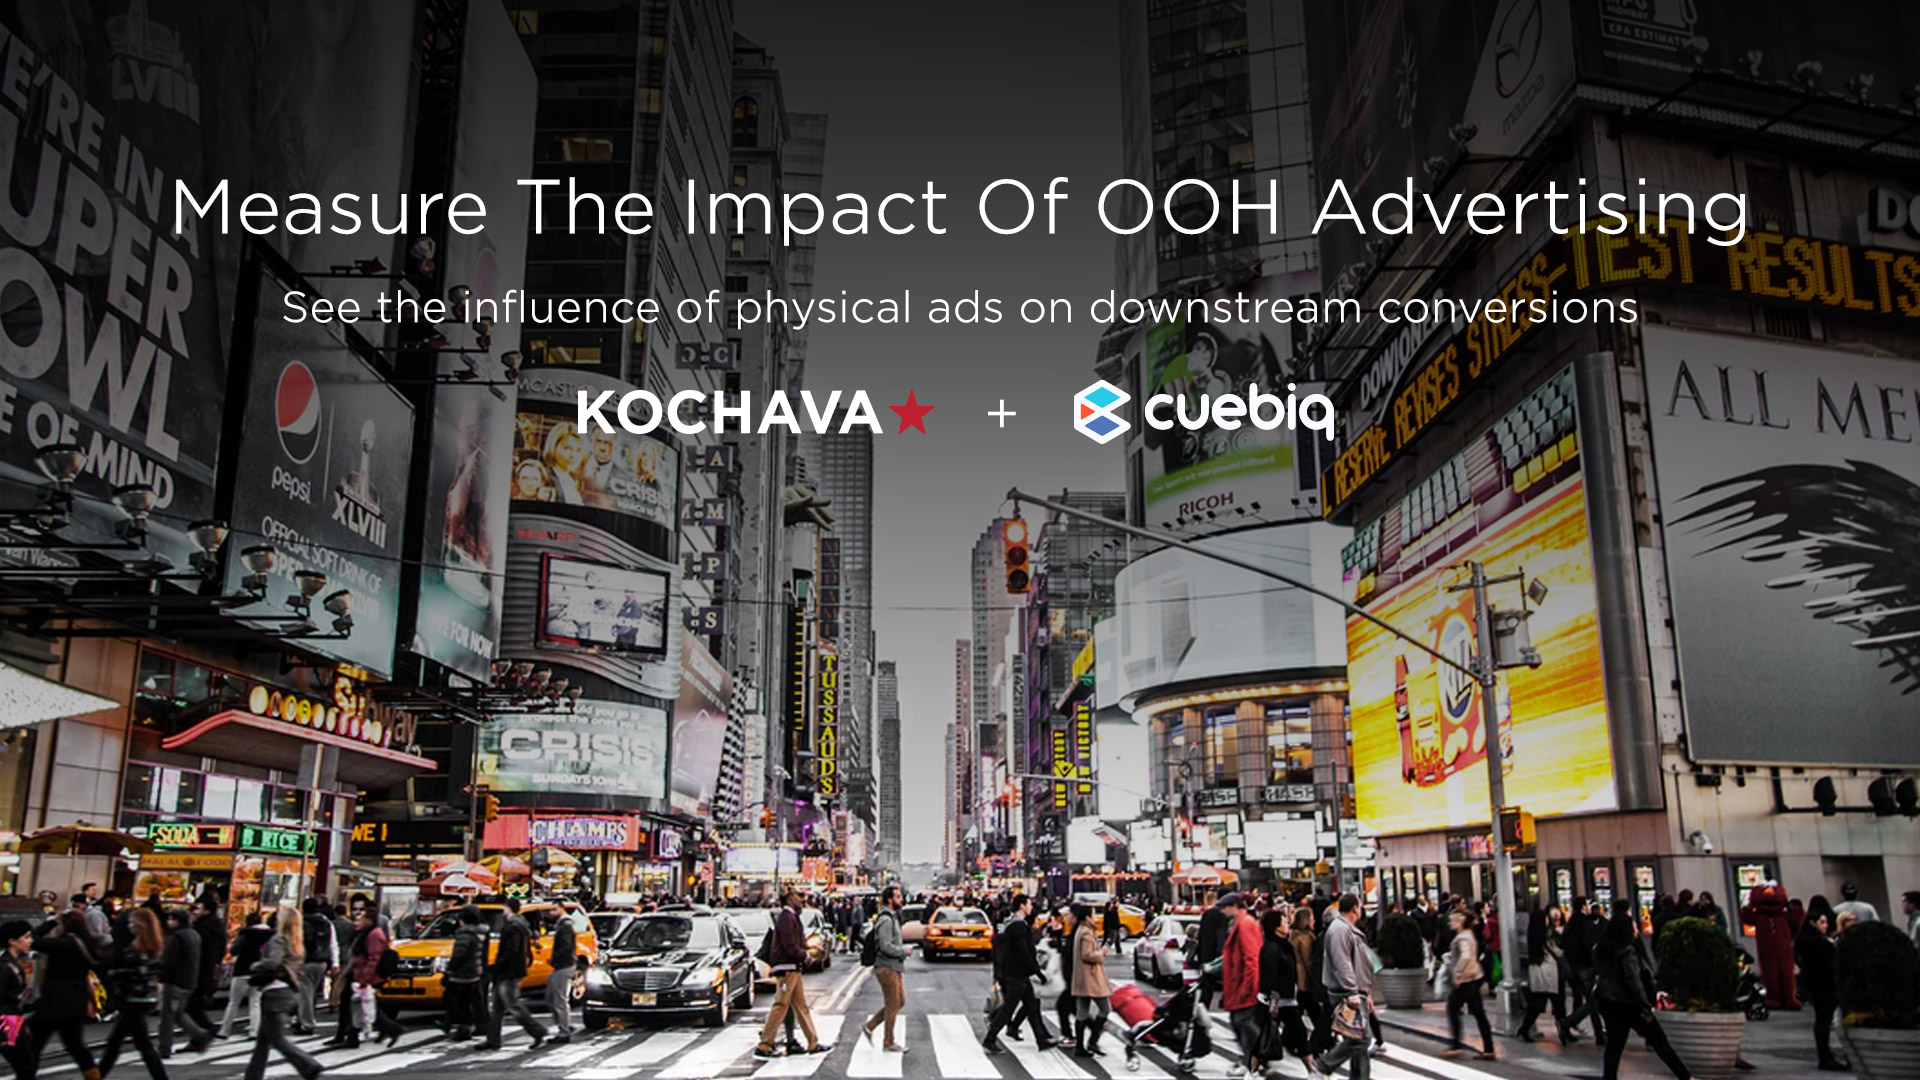 Kochava and Cuebiq partnership